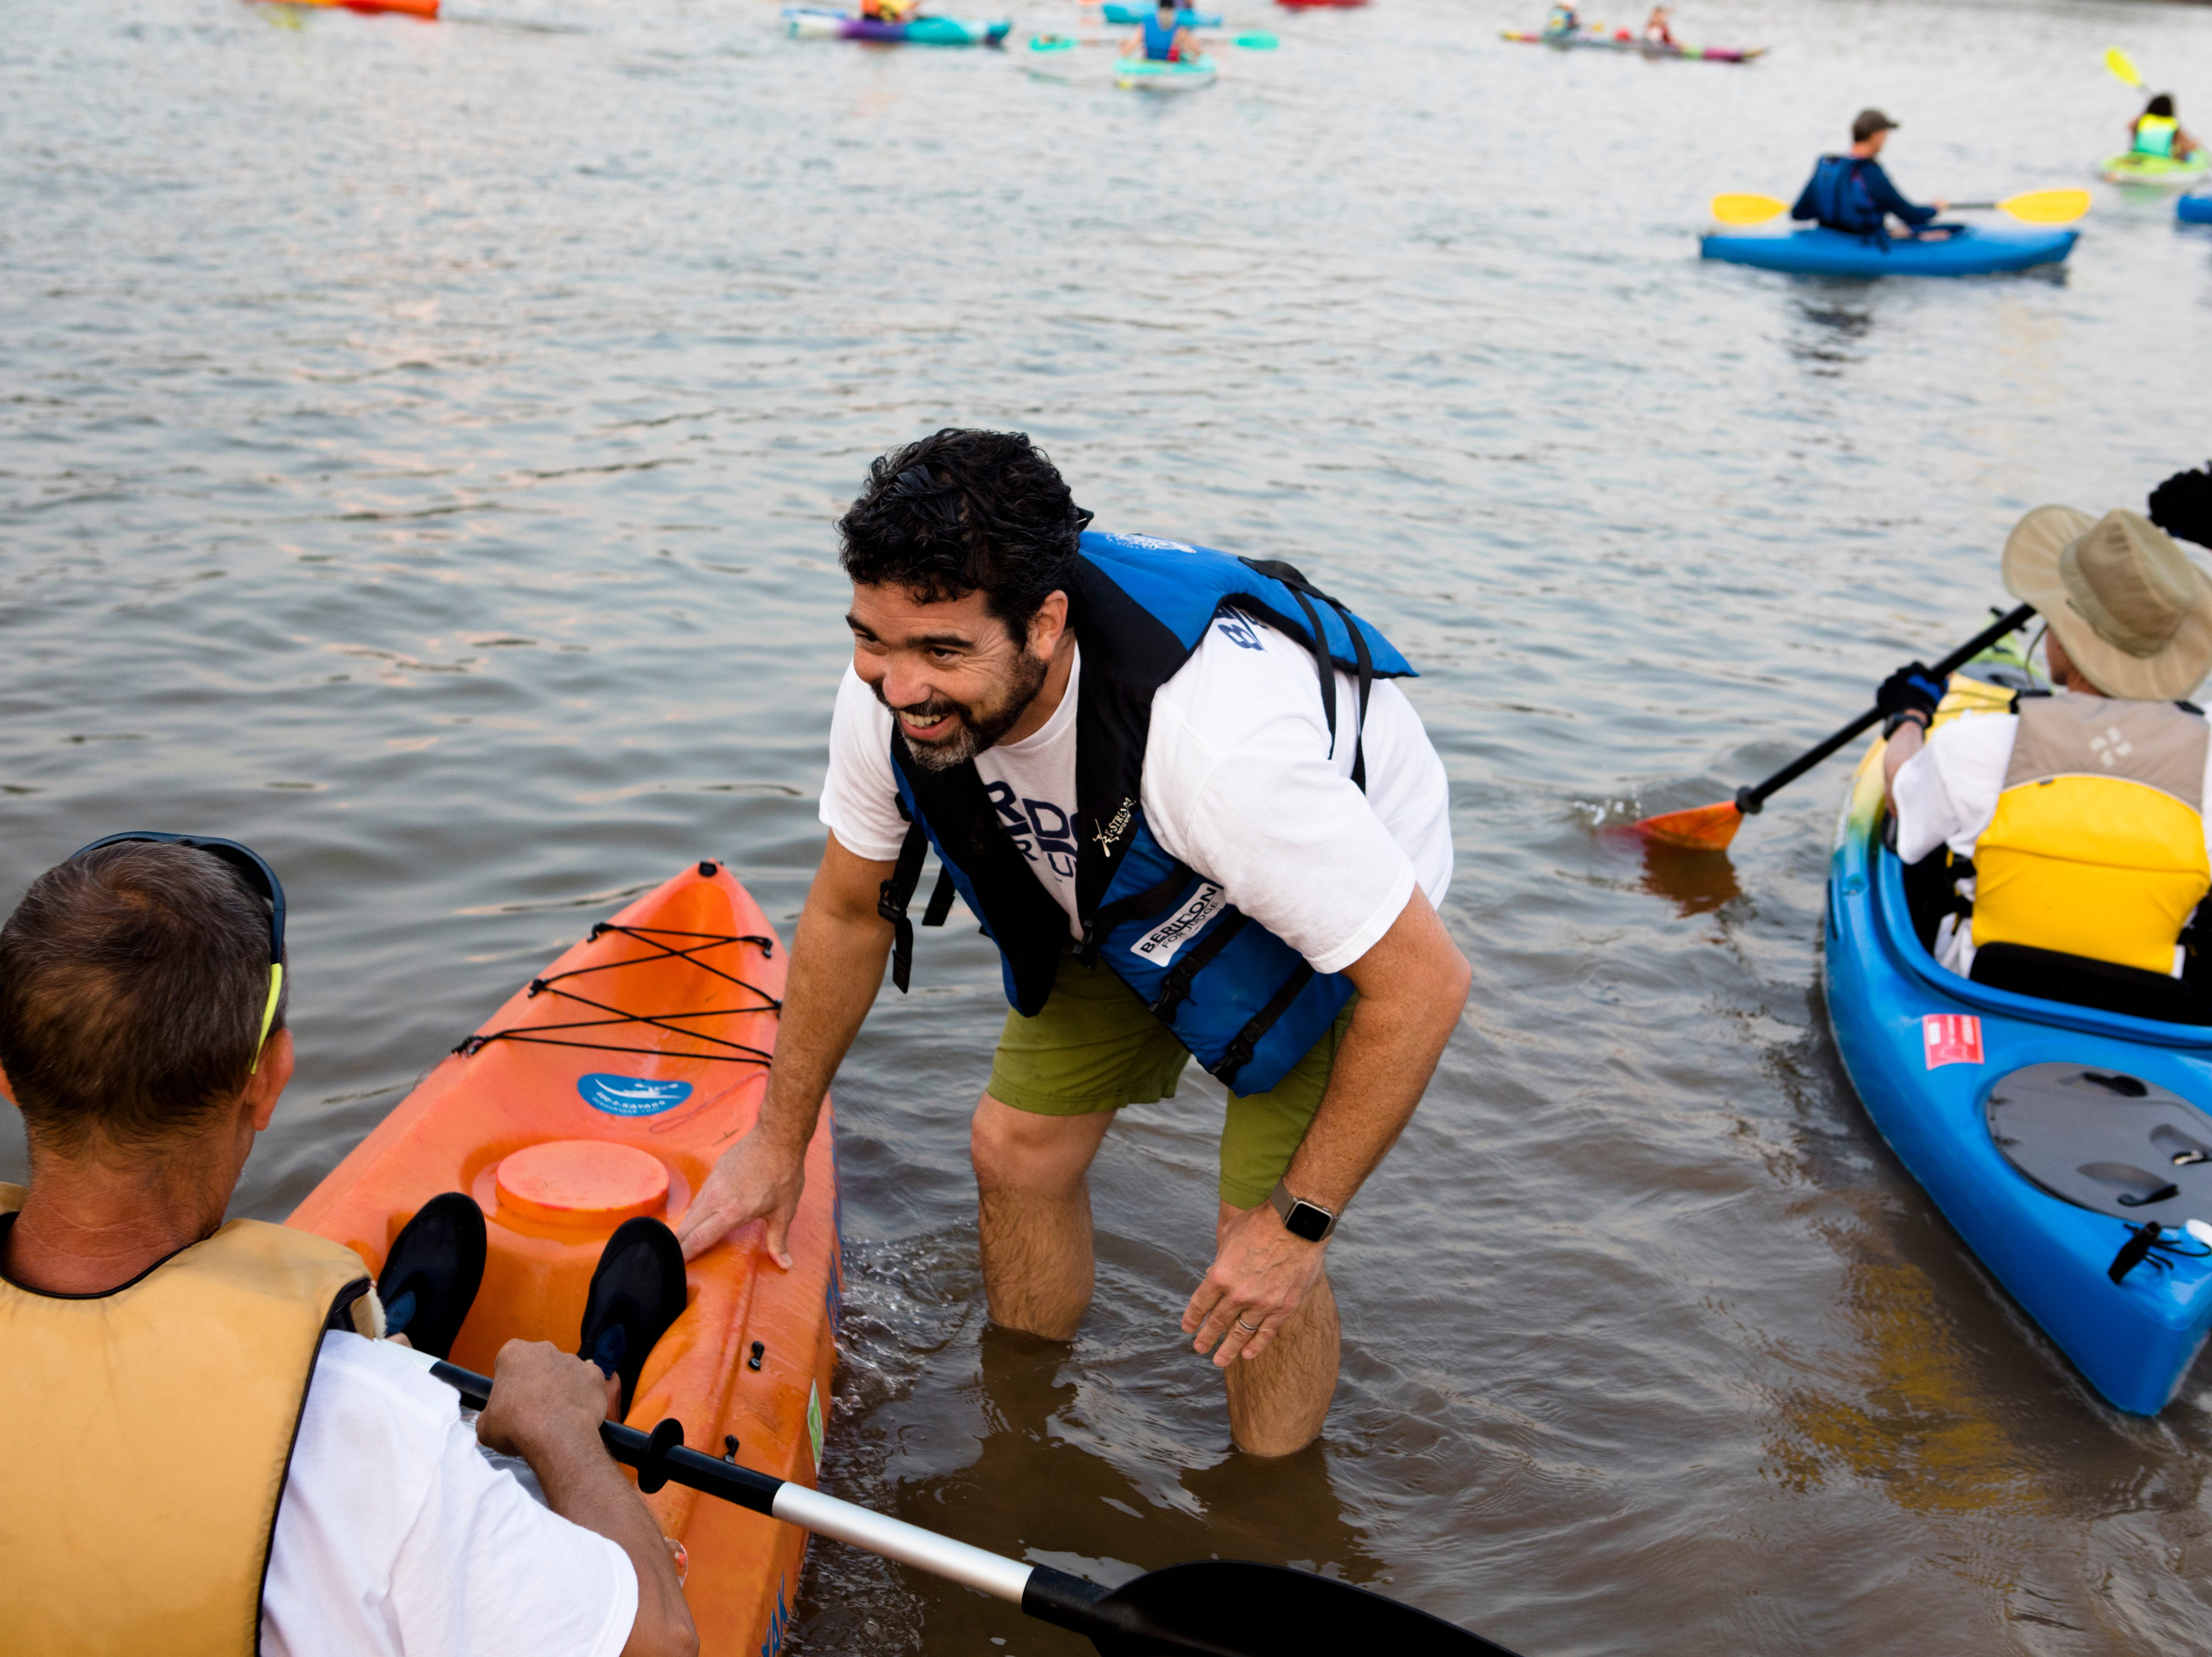 Tom Beridon helps people into the Ohio River during the 17th annual Ohio River Paddlefest in Cincinnati on Saturday, Aug. 4, 2018.  According to organizers about 2000 people participated in the event which Outdoor Adventure Clubs of Greater Cincinnati raised almost $100,000.